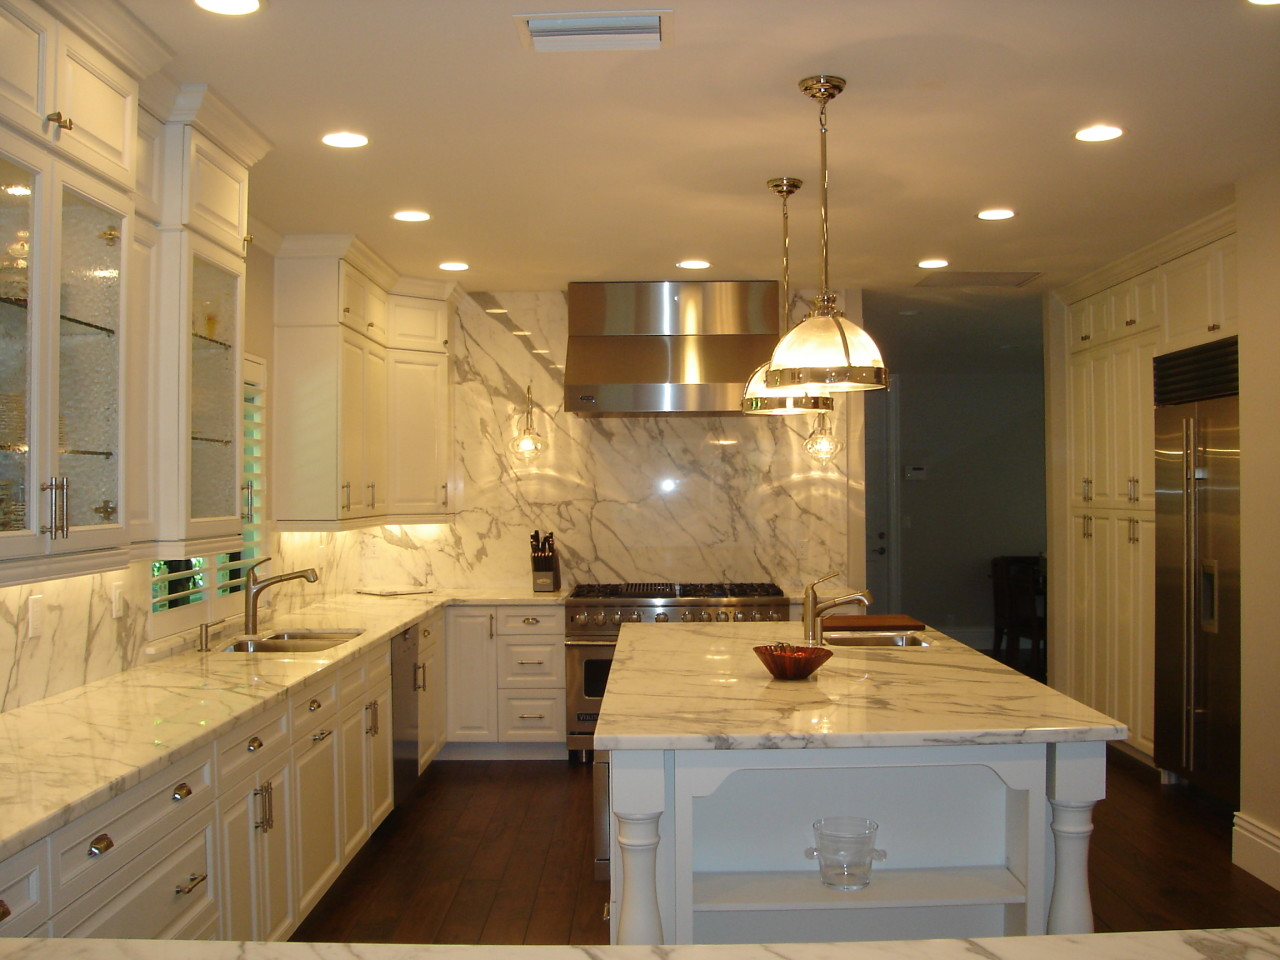 transitional kitchen design bath kitchen creations south florida